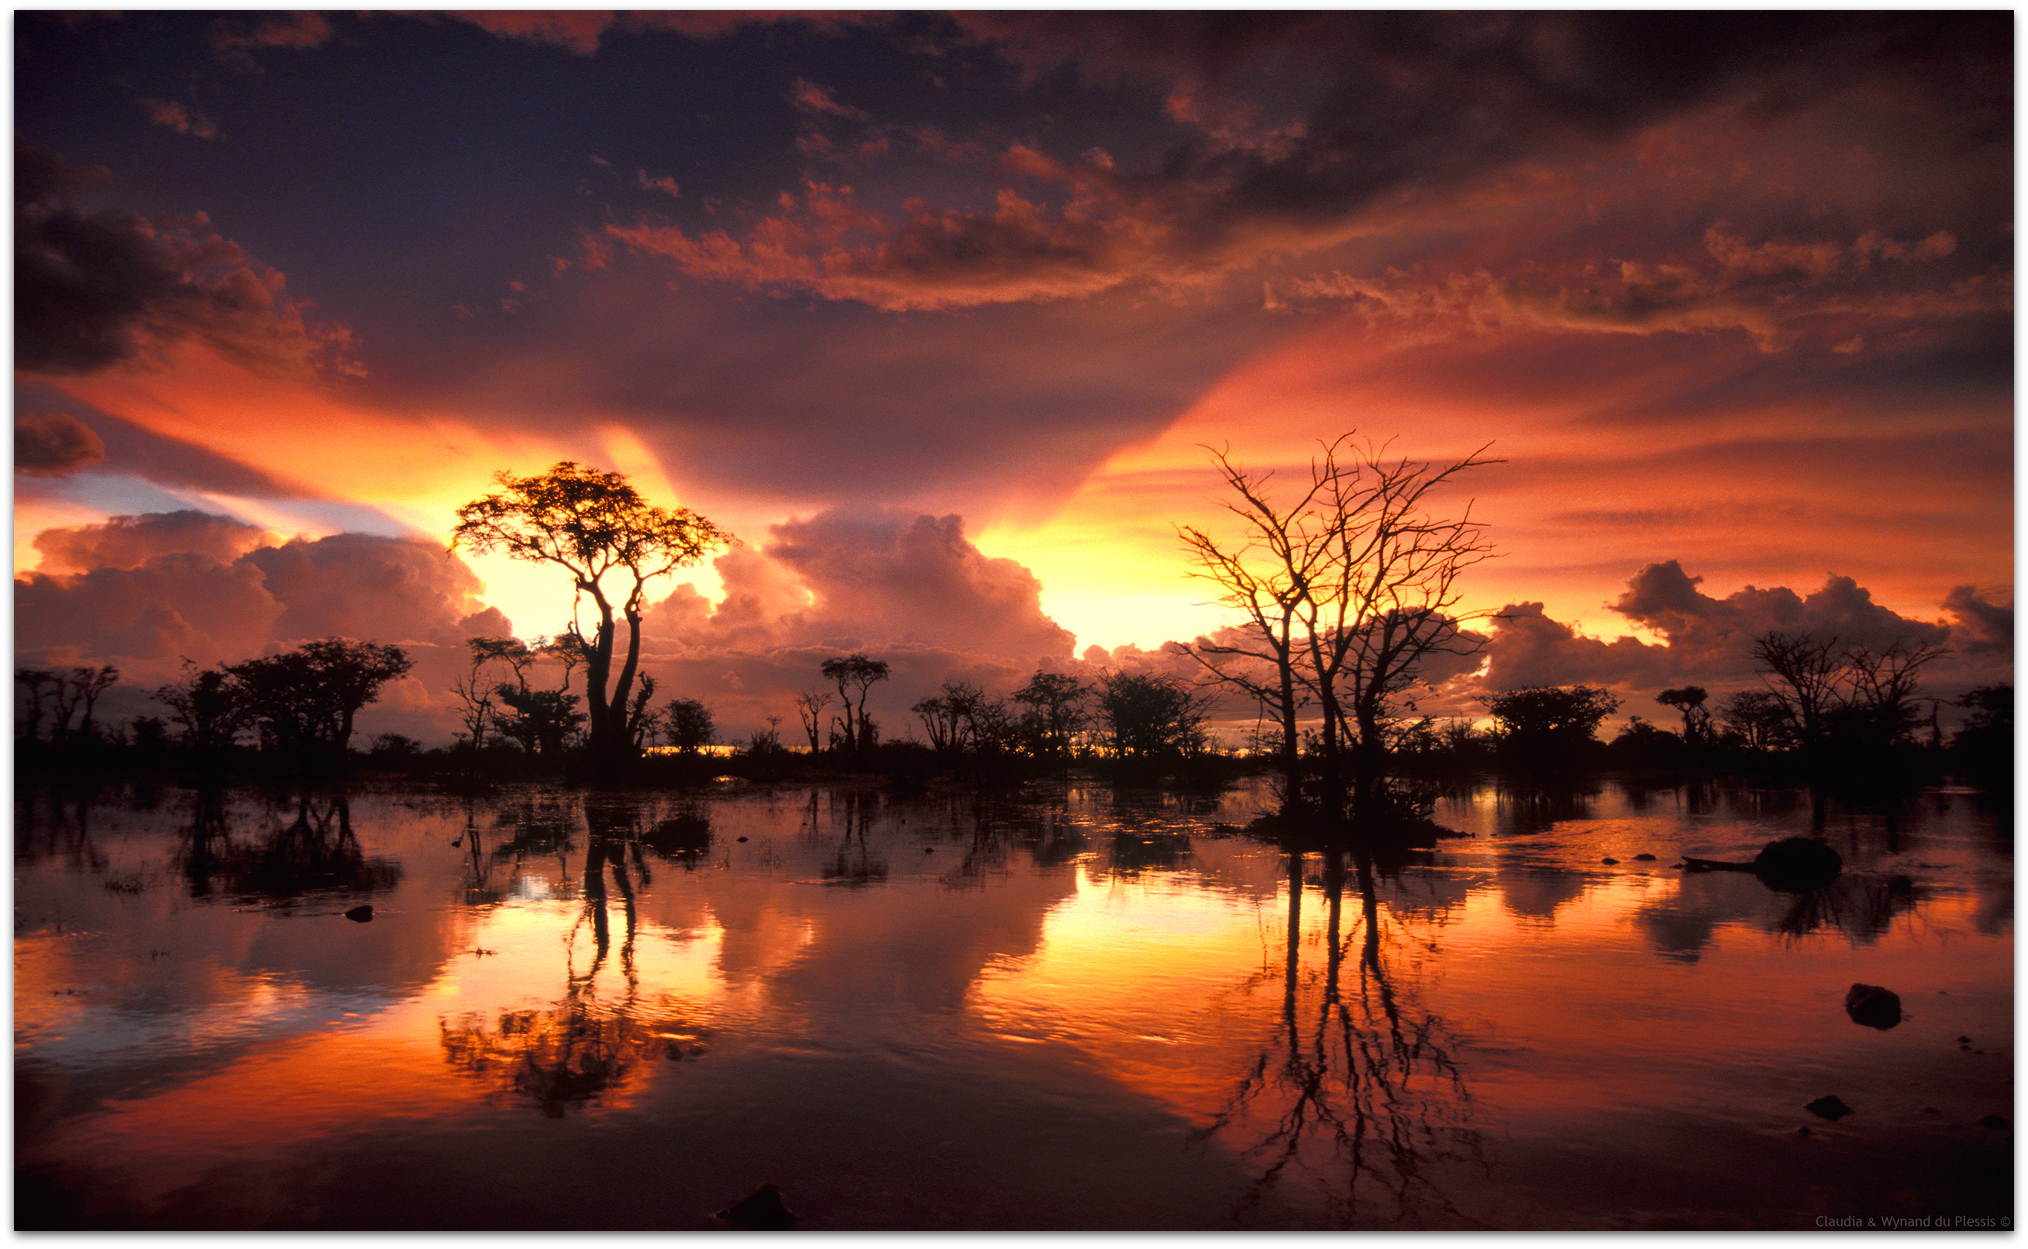 Fairy Tale Forest in the Etosha National Park